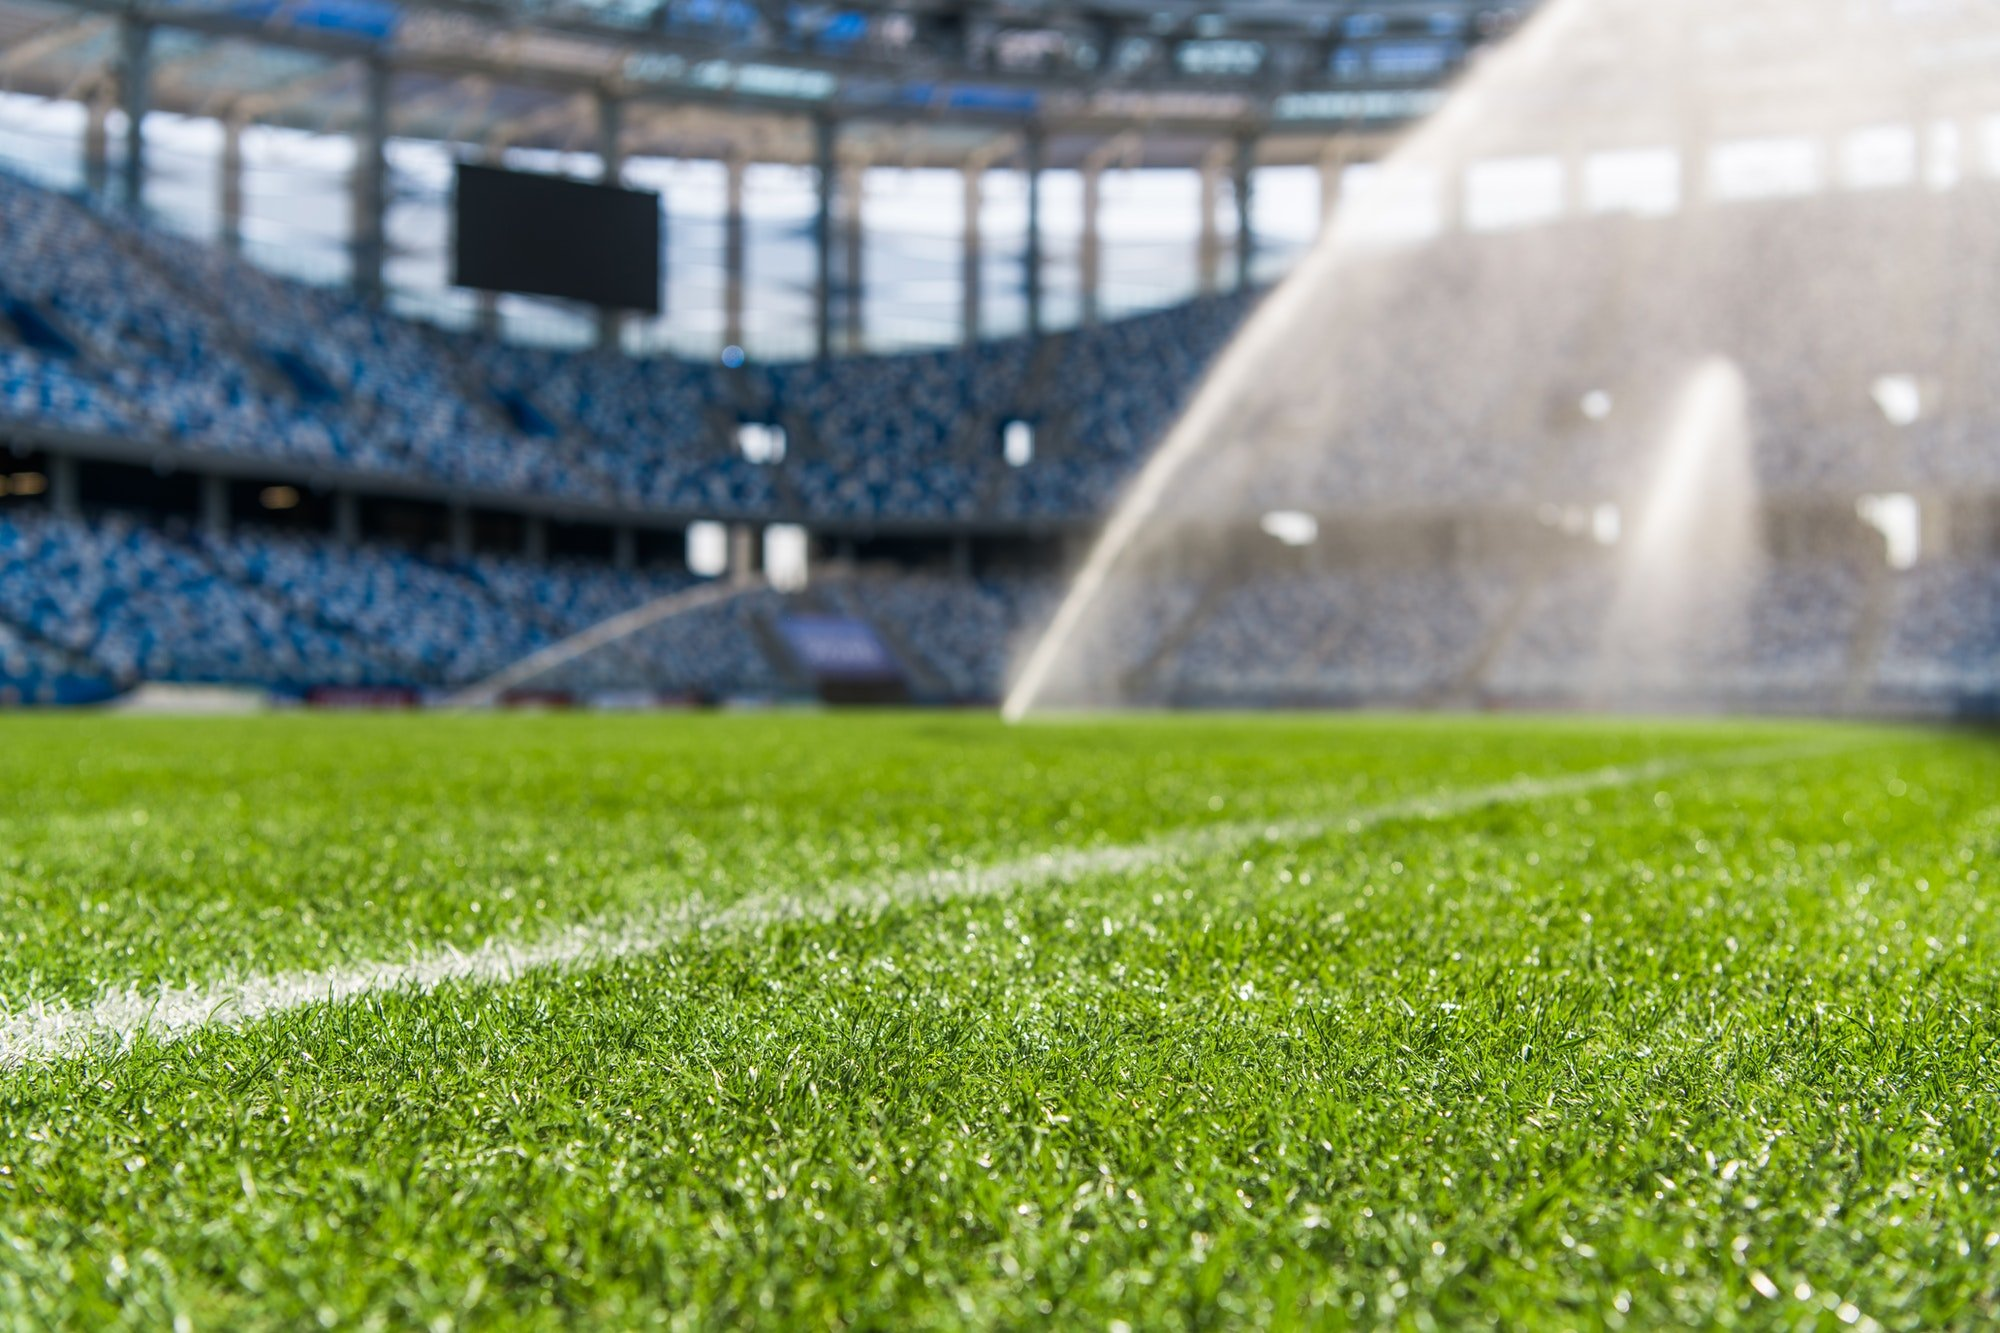 Dew on the artificial grass at empty stadium.